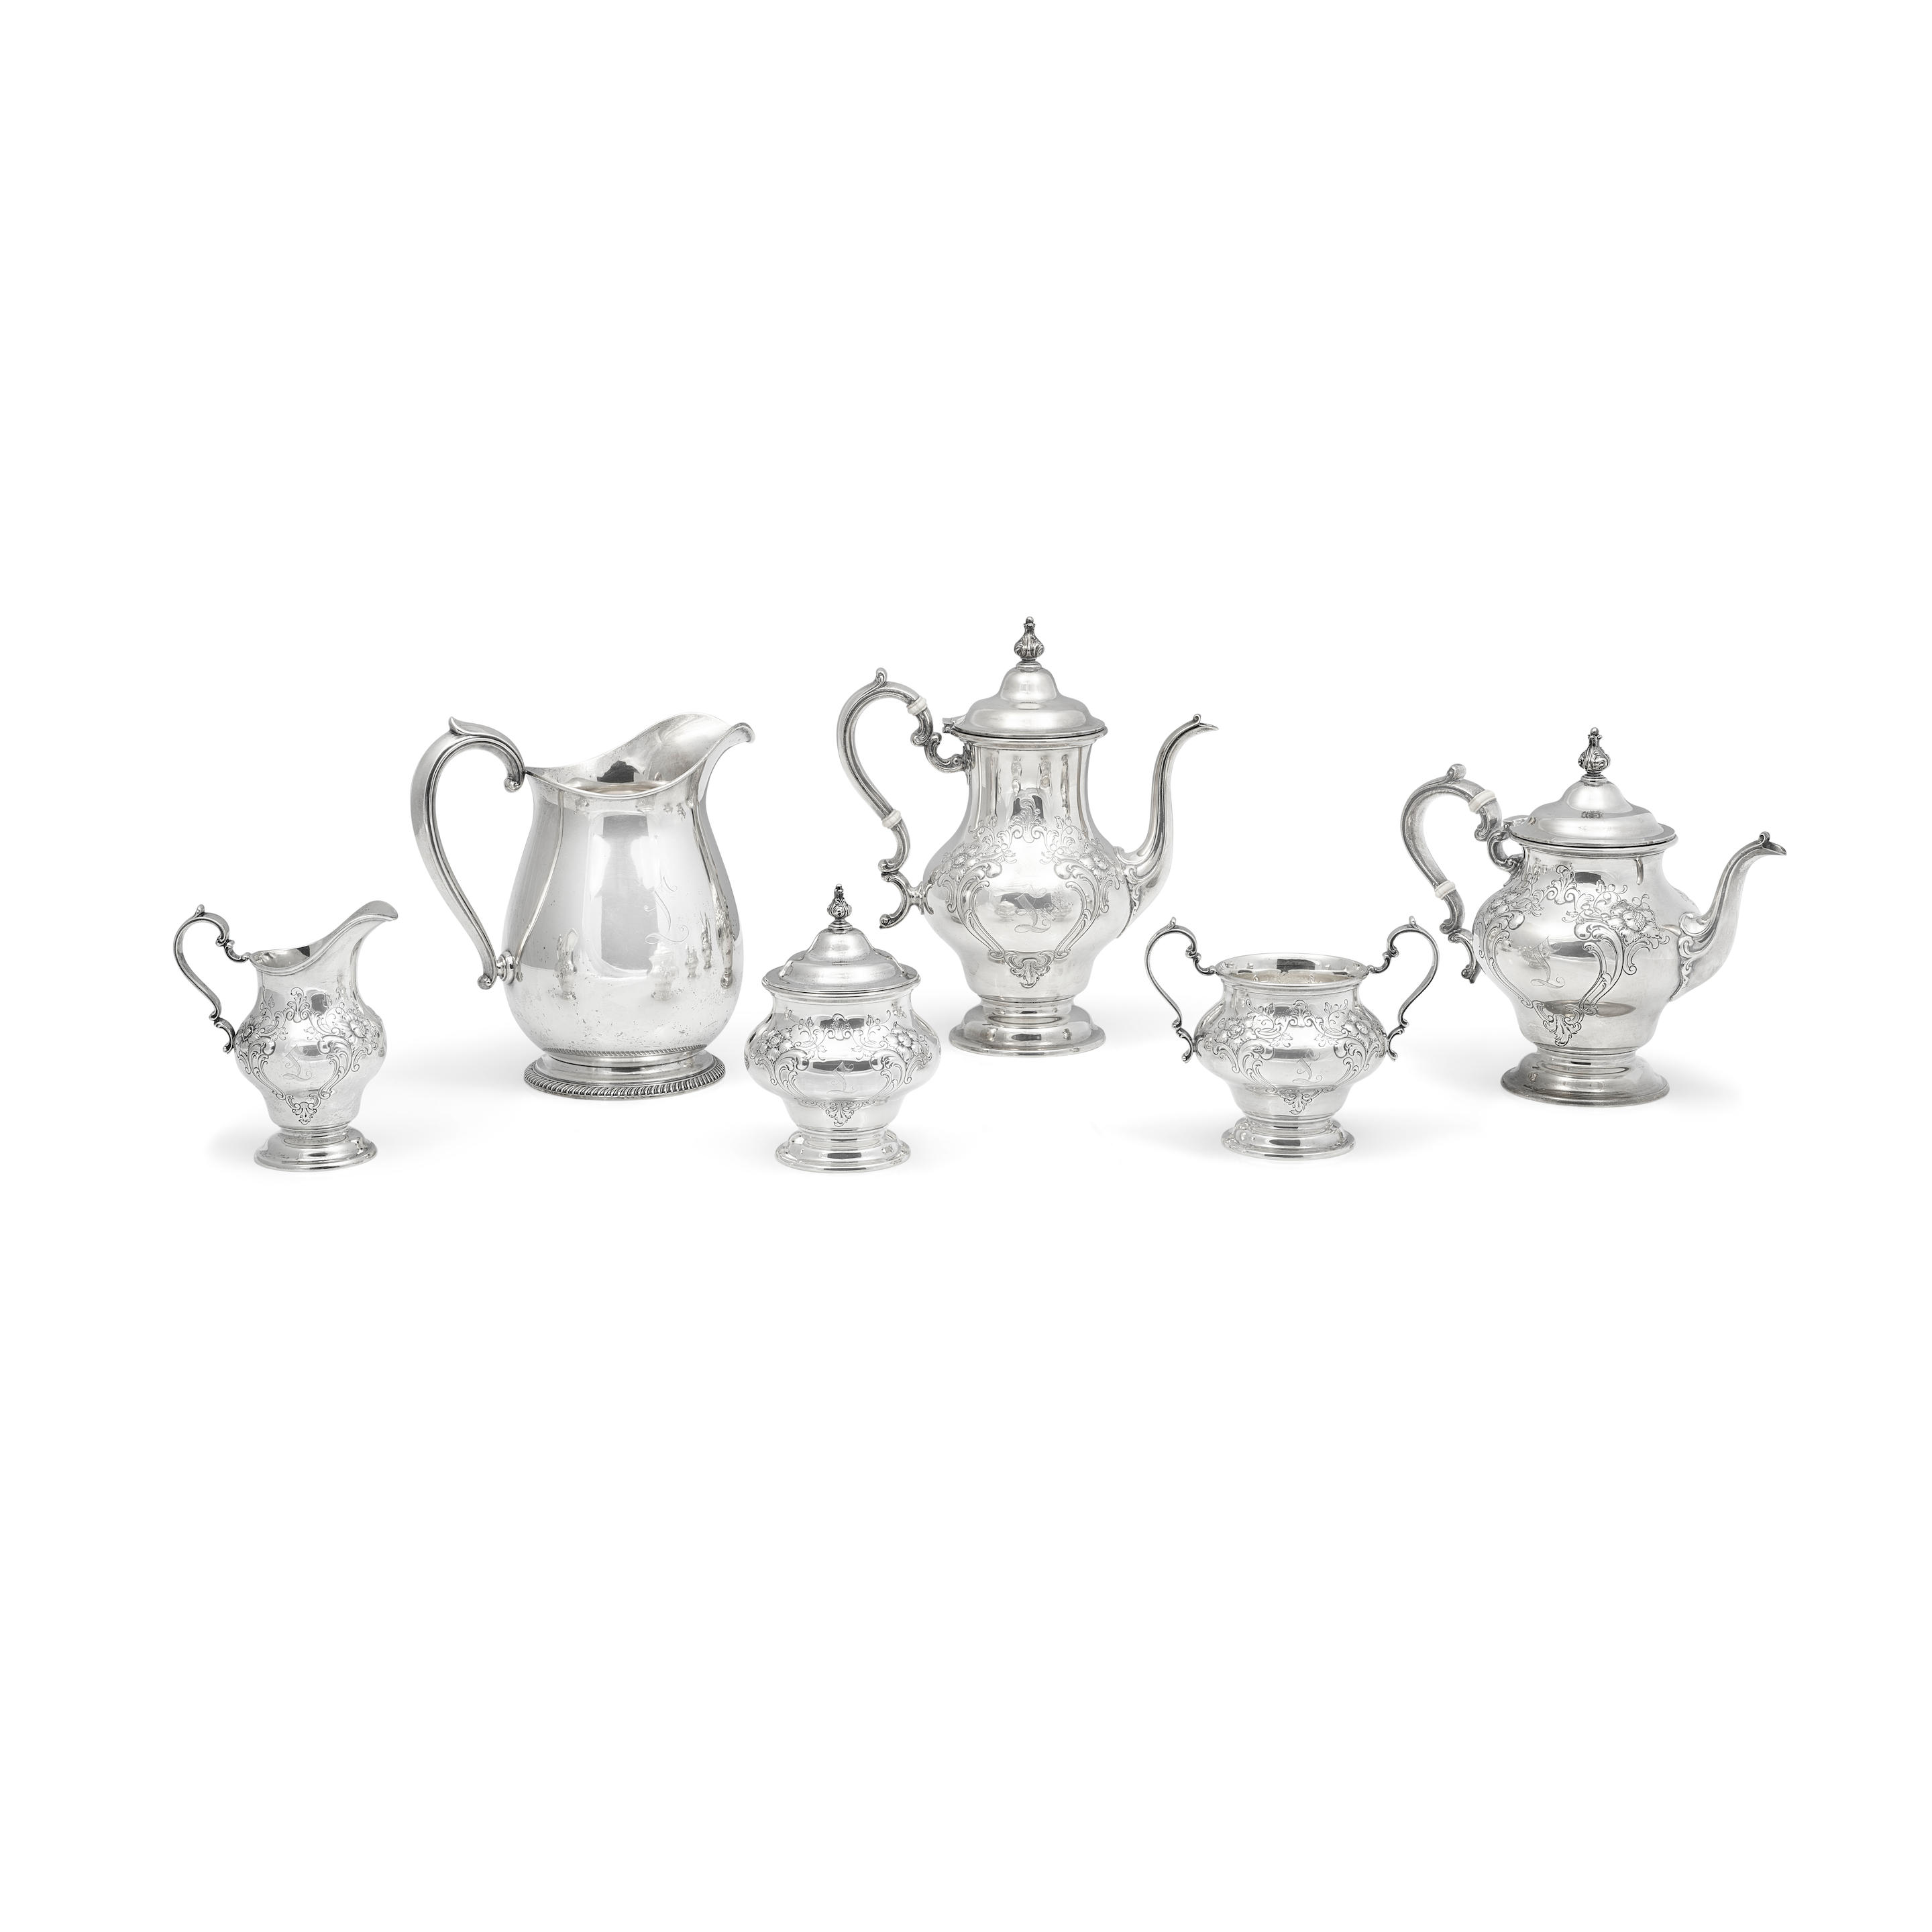 An American sterling silver Five piece tea and coffee service